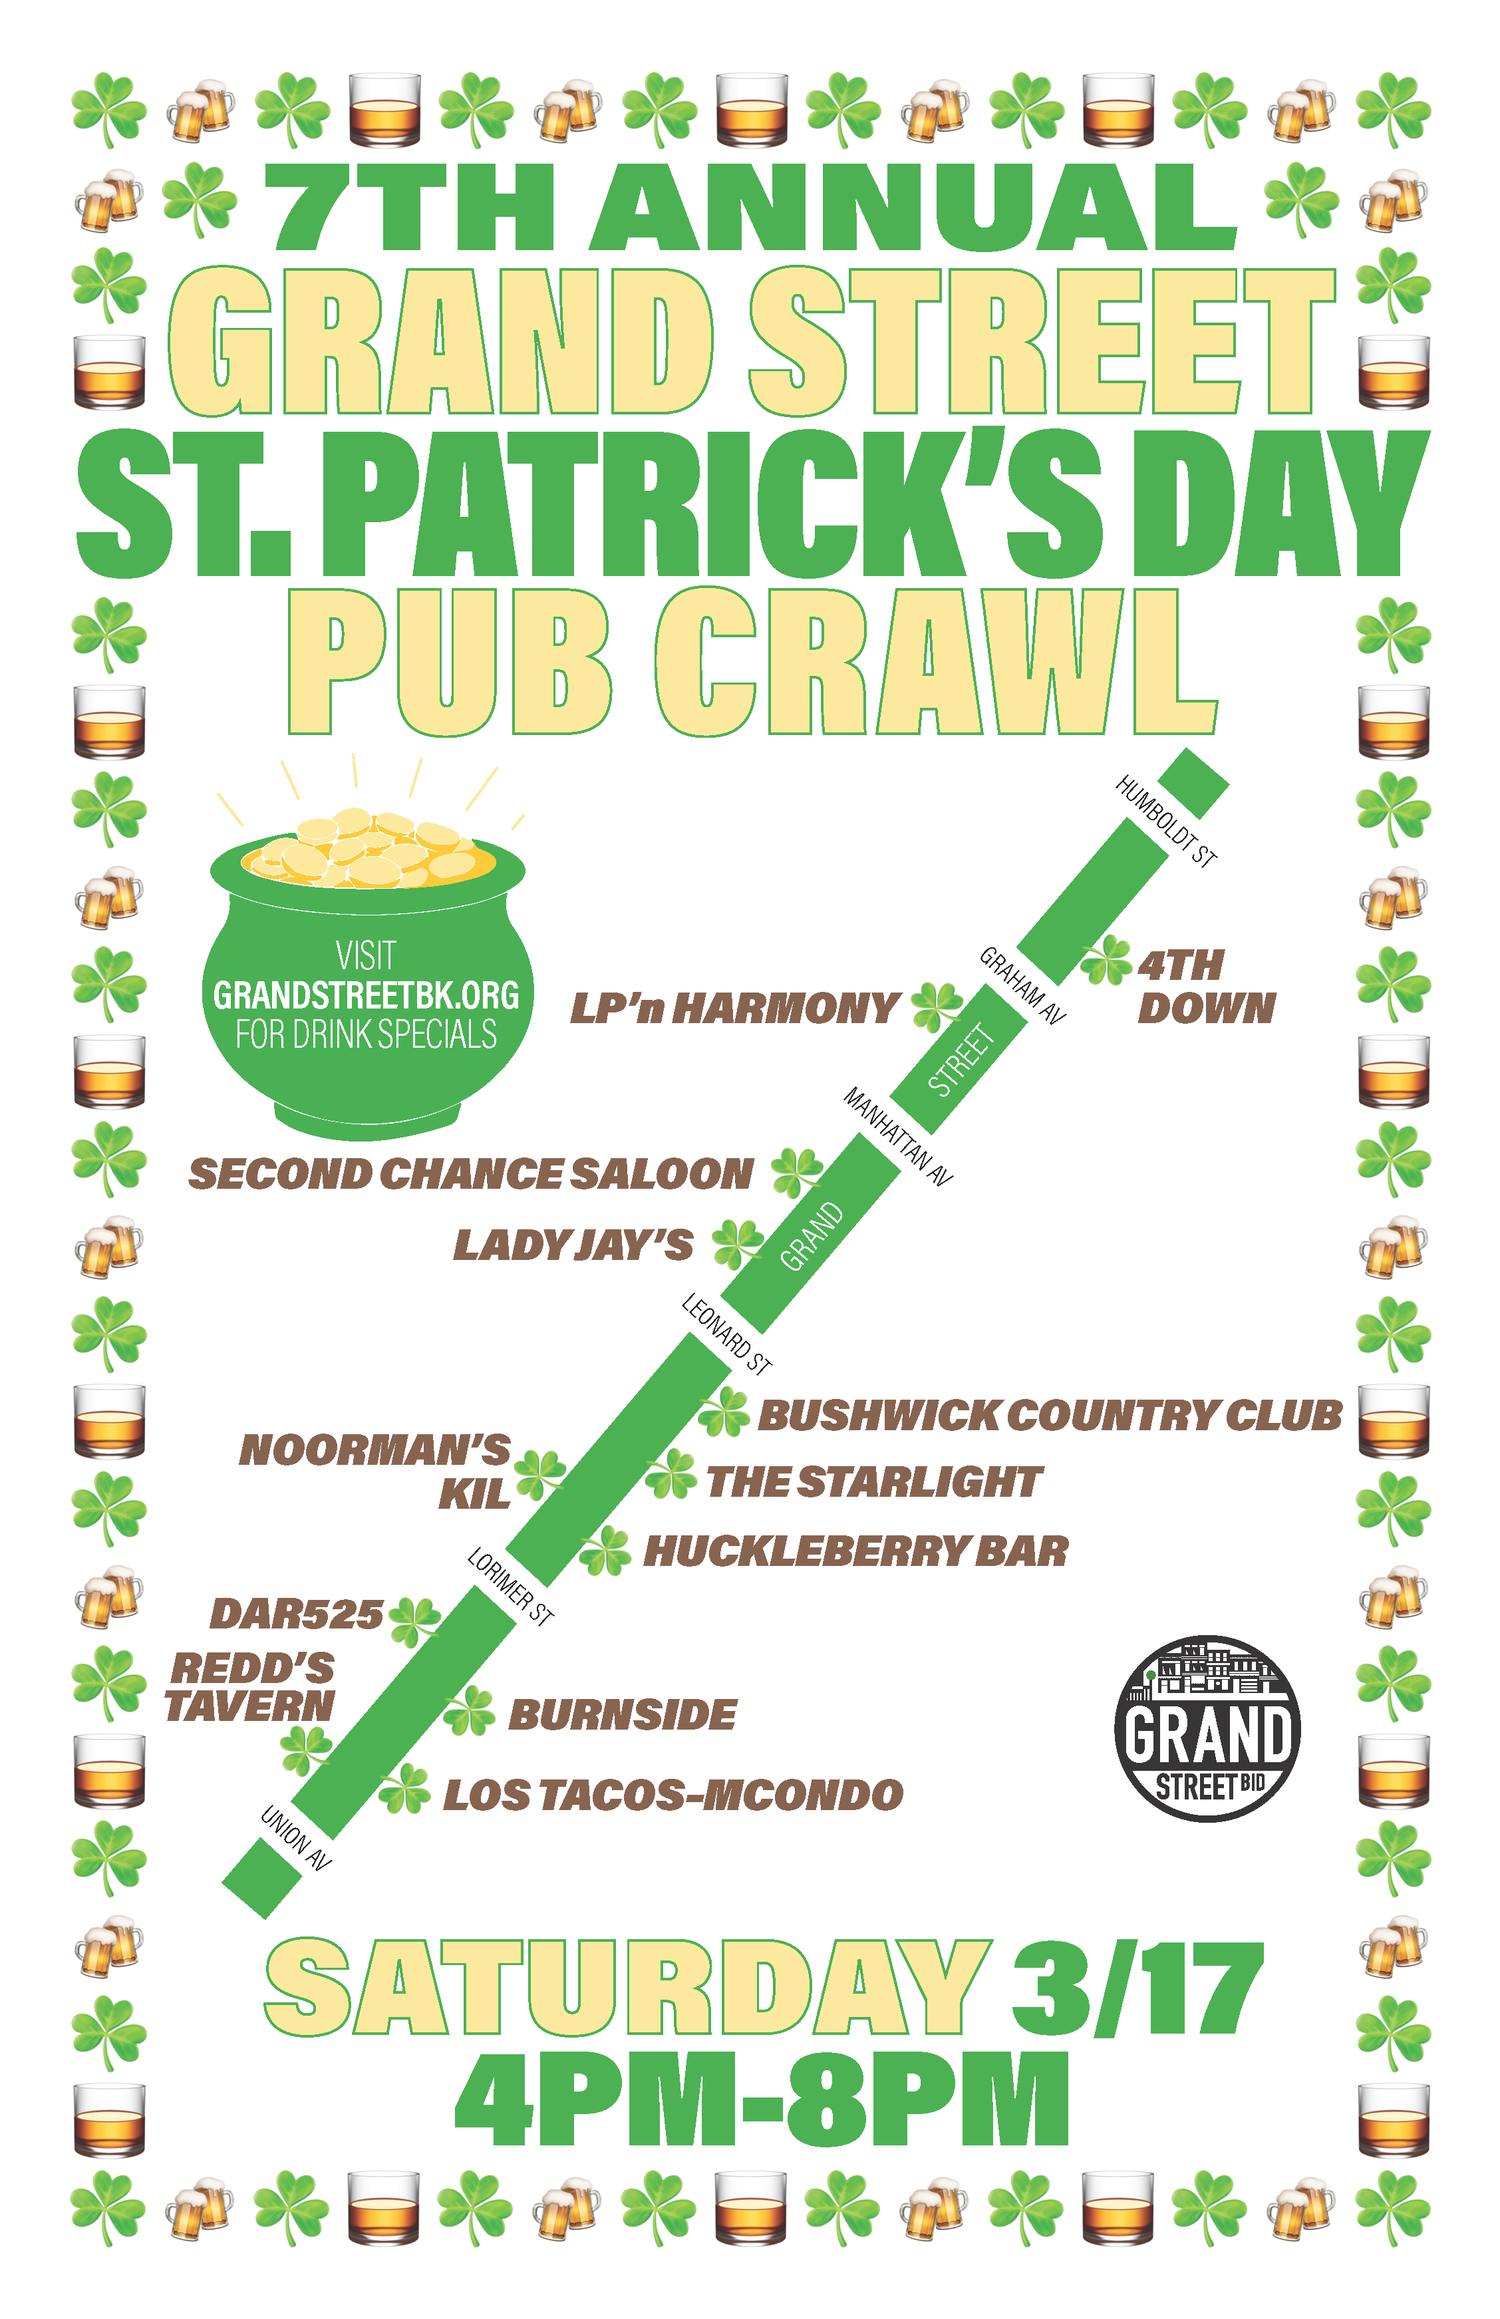 7th Annual Grand Street St. Patrick's Day Pub Crawl